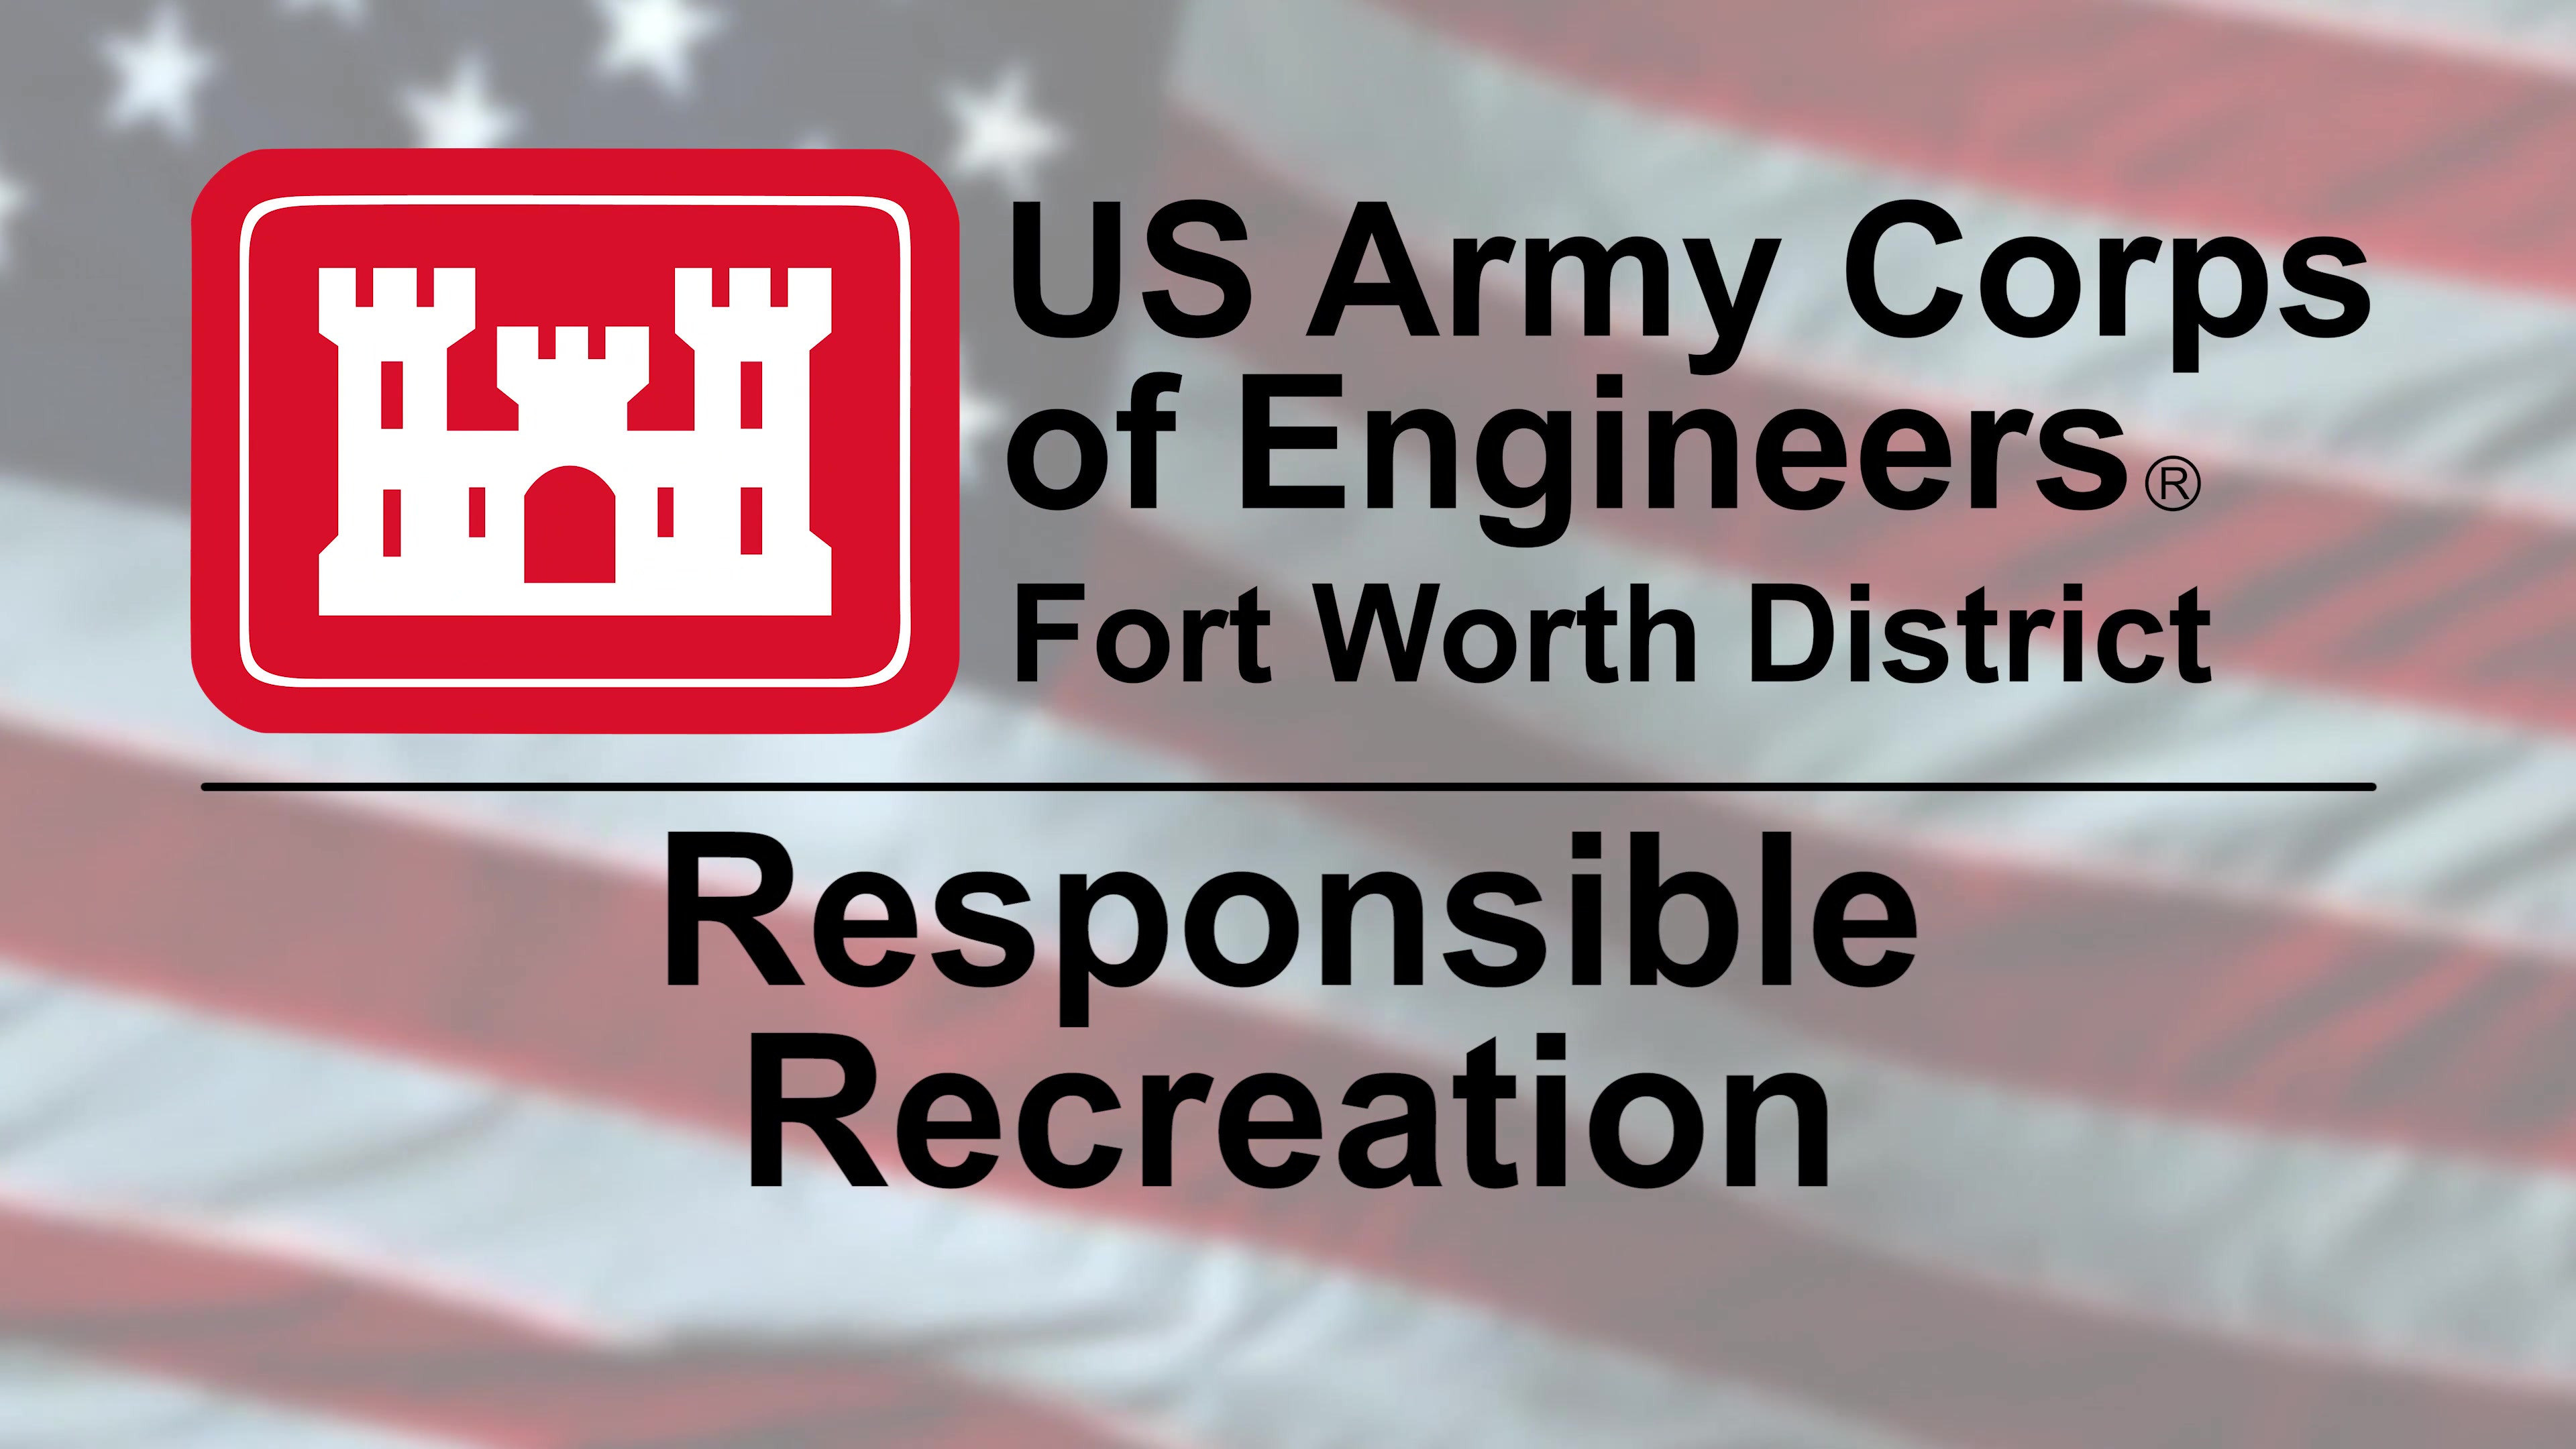 From every one at #USACE Fort Worth, we would like to remind our patrons to practice RESPONSIBLE RECREATION at the 25 lakes we offer. Leave no trace, stay safe, and see you at the lake!